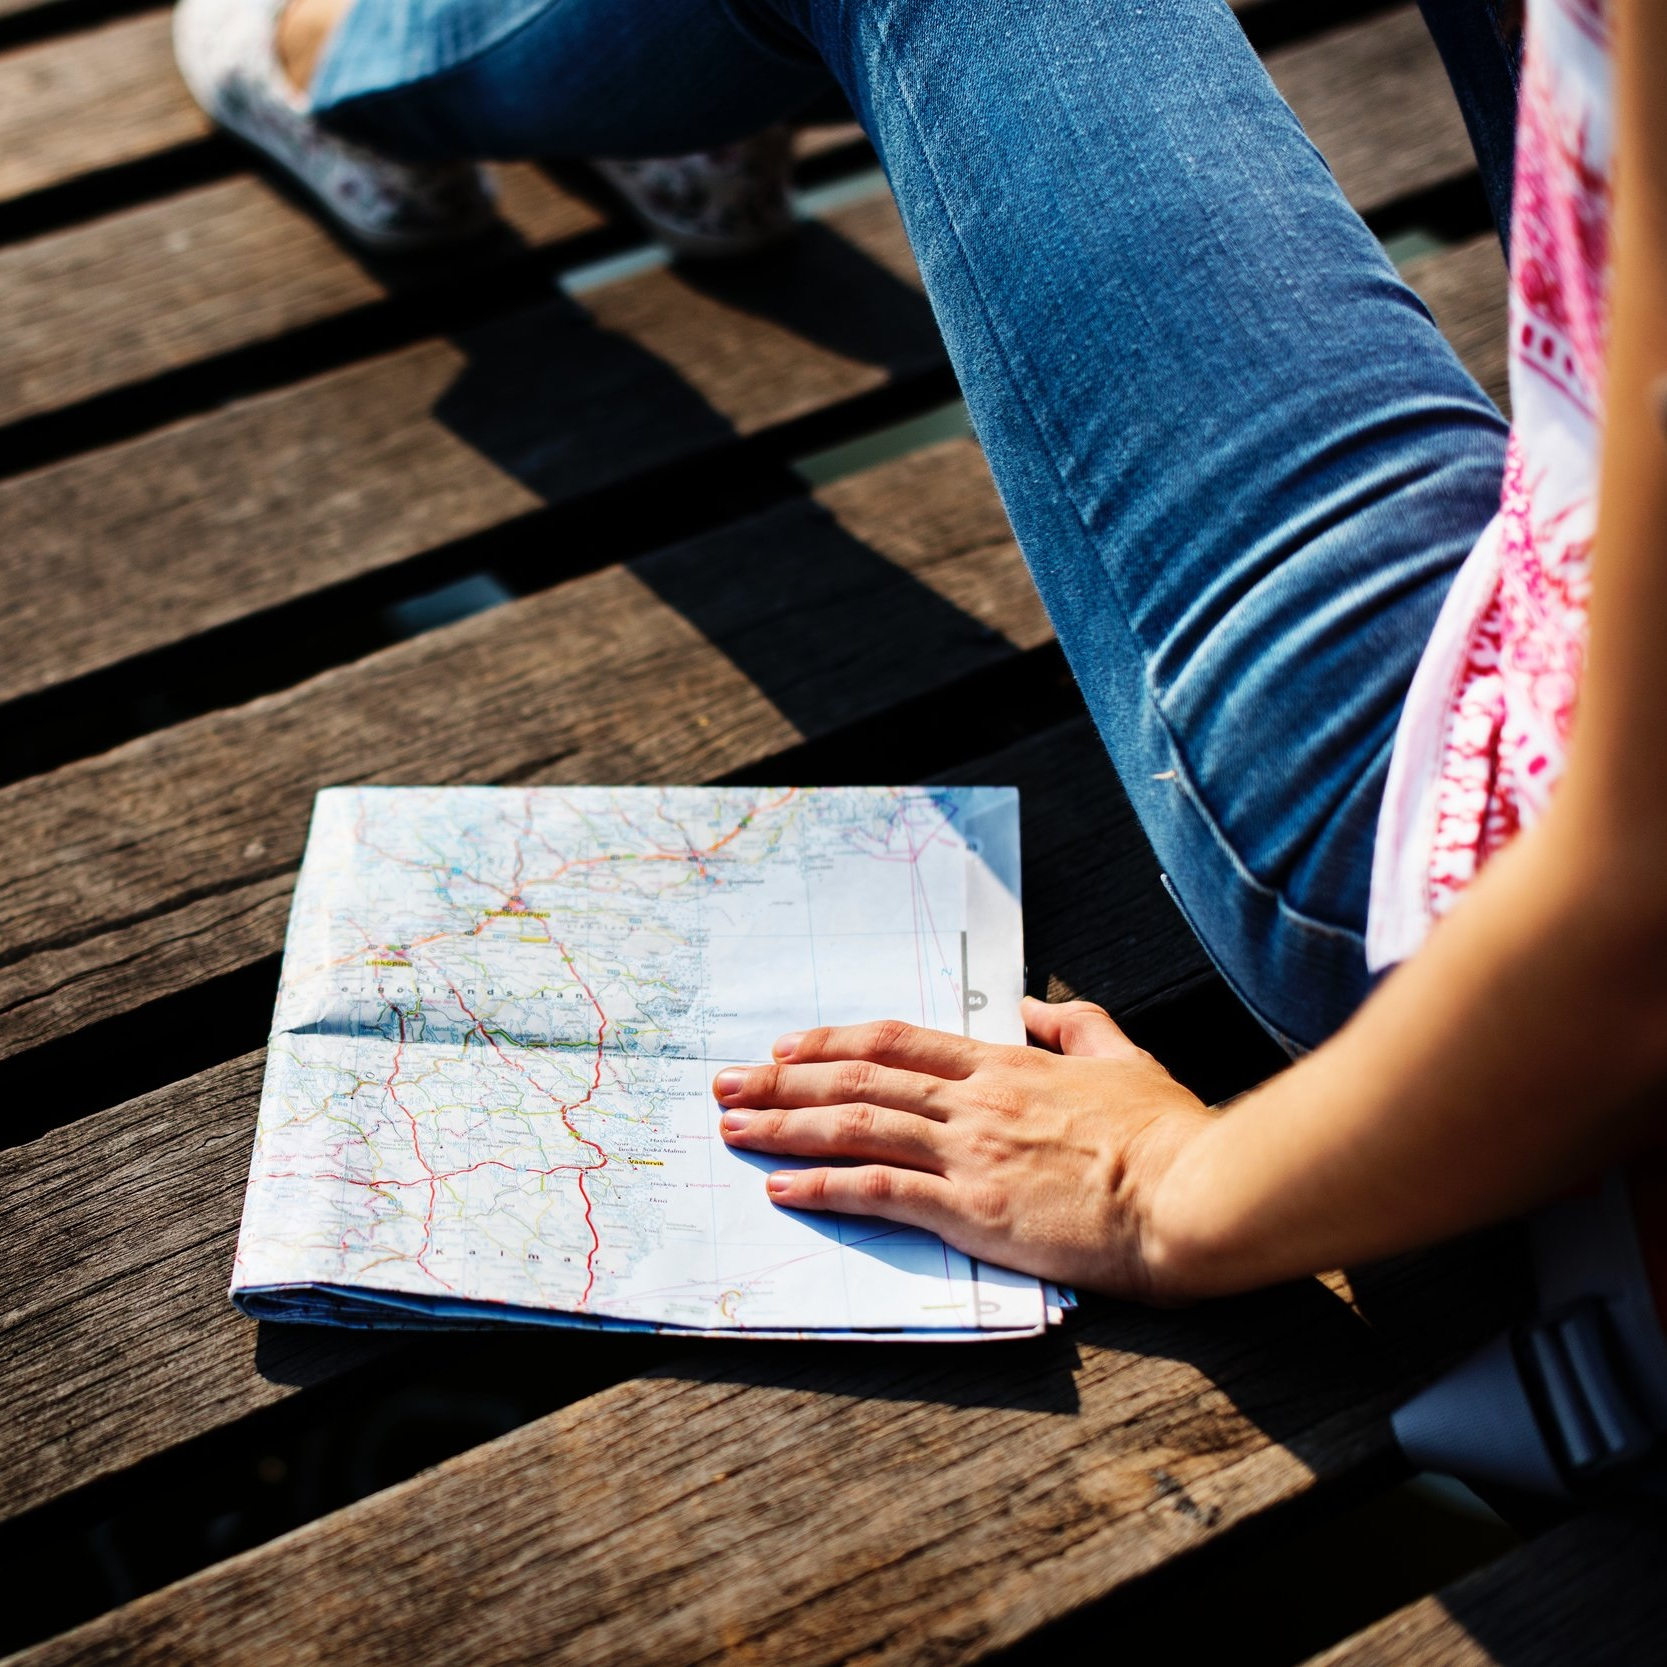 More than Maps: Exploring Geography - Young children LOVE maps! How can this love encourage knowledge about the world around them? Participants will explore the connections that children make to the world through human geography and investigate how to make those connections around the globe. $20